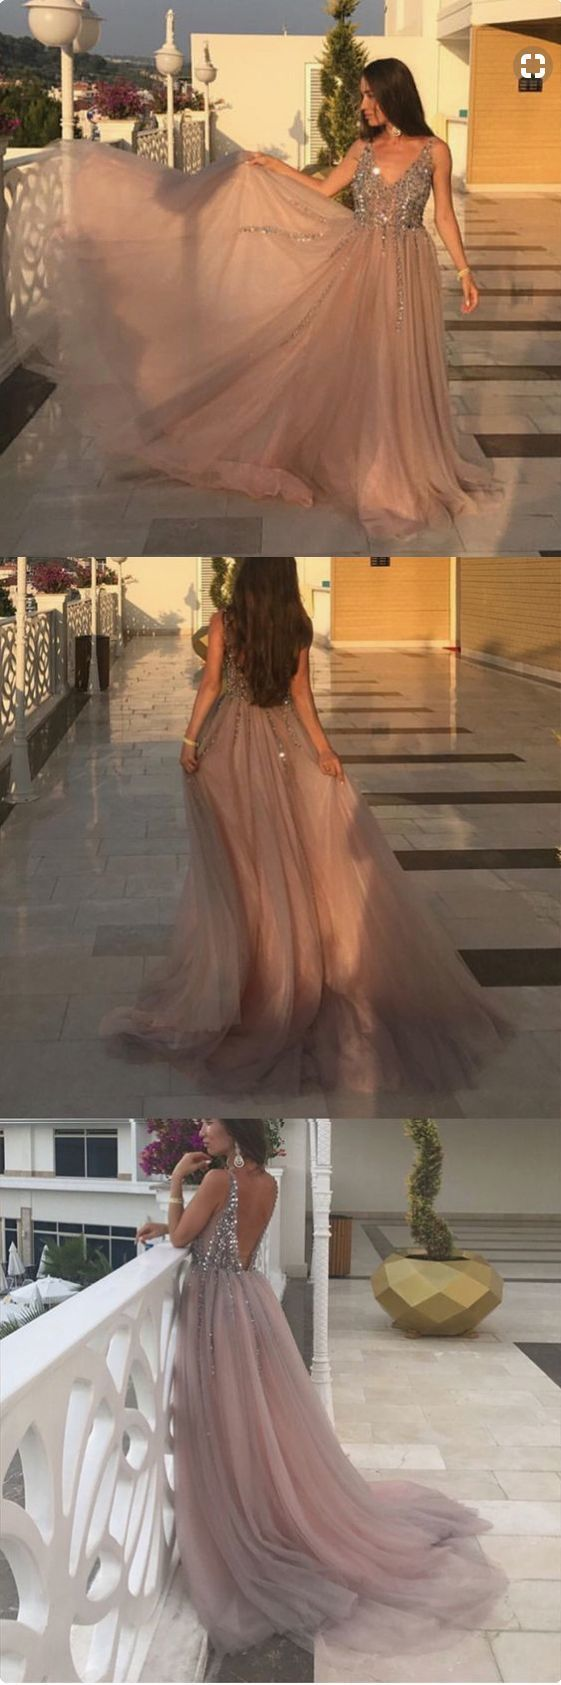 Sexy A-Line V-Neck Prom Dresses,Long Prom Dresses,Cheap Prom Dresses, Evening